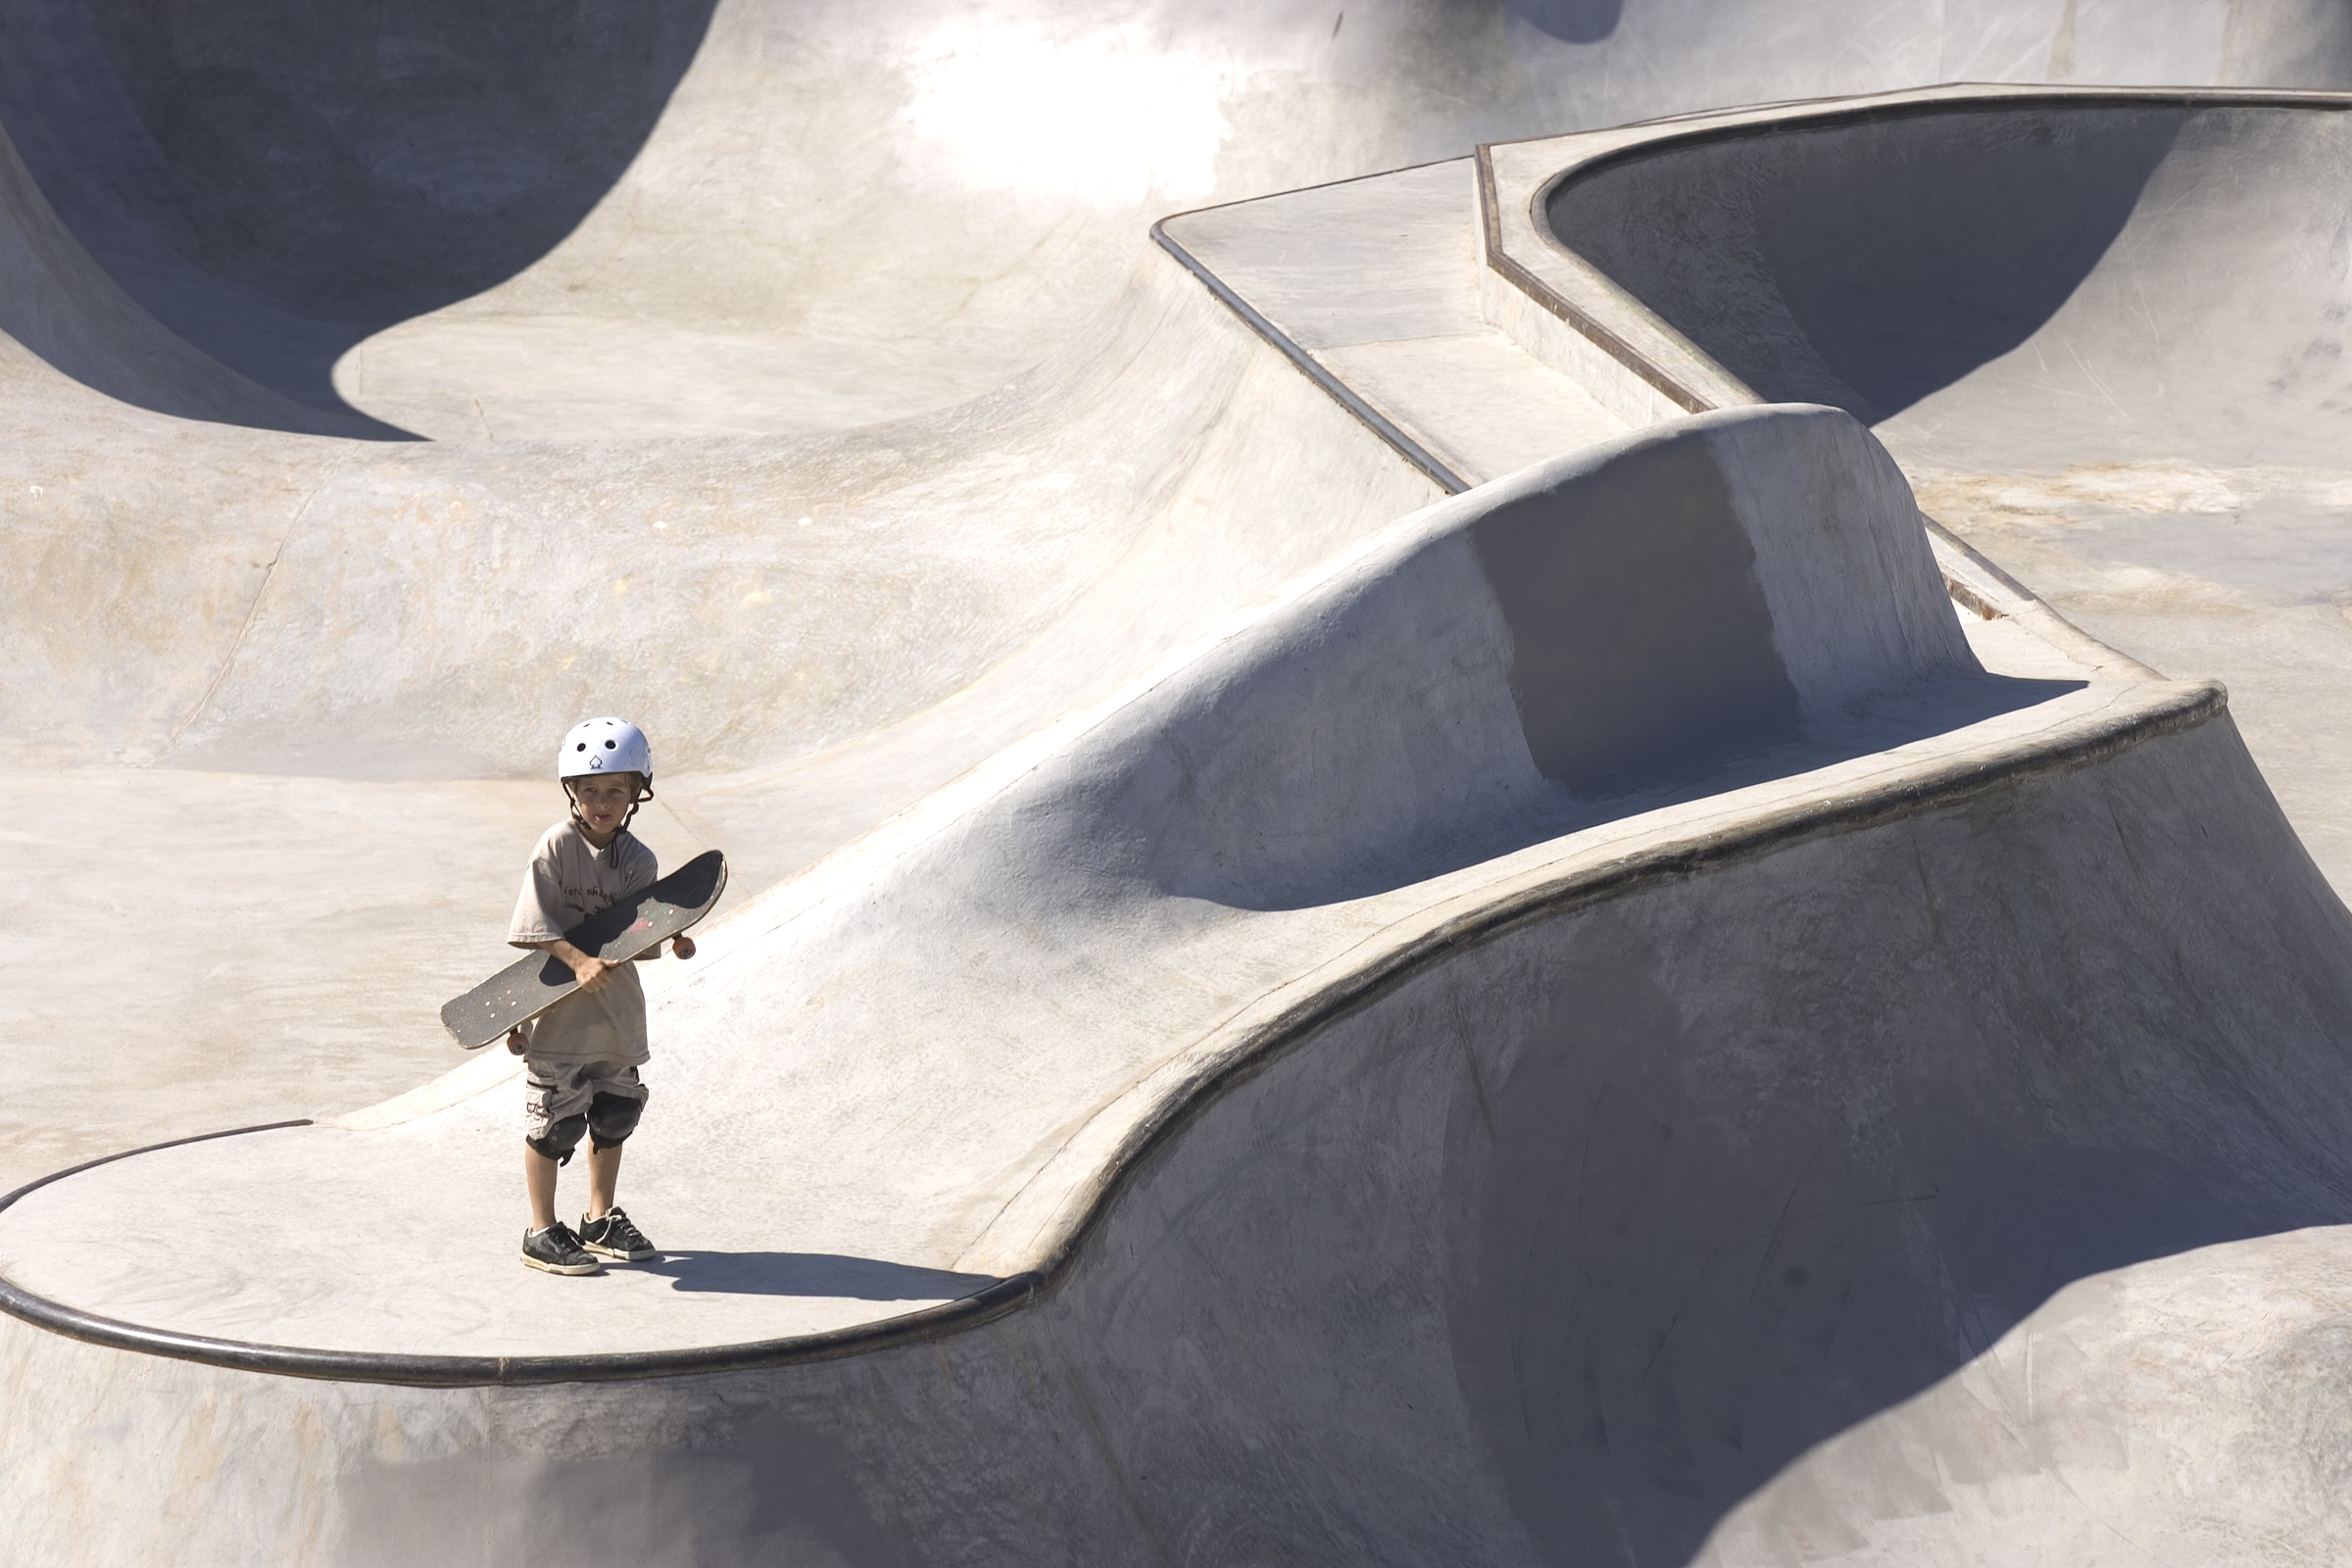 A young skater enjoys the Athens, Georgia skatepark